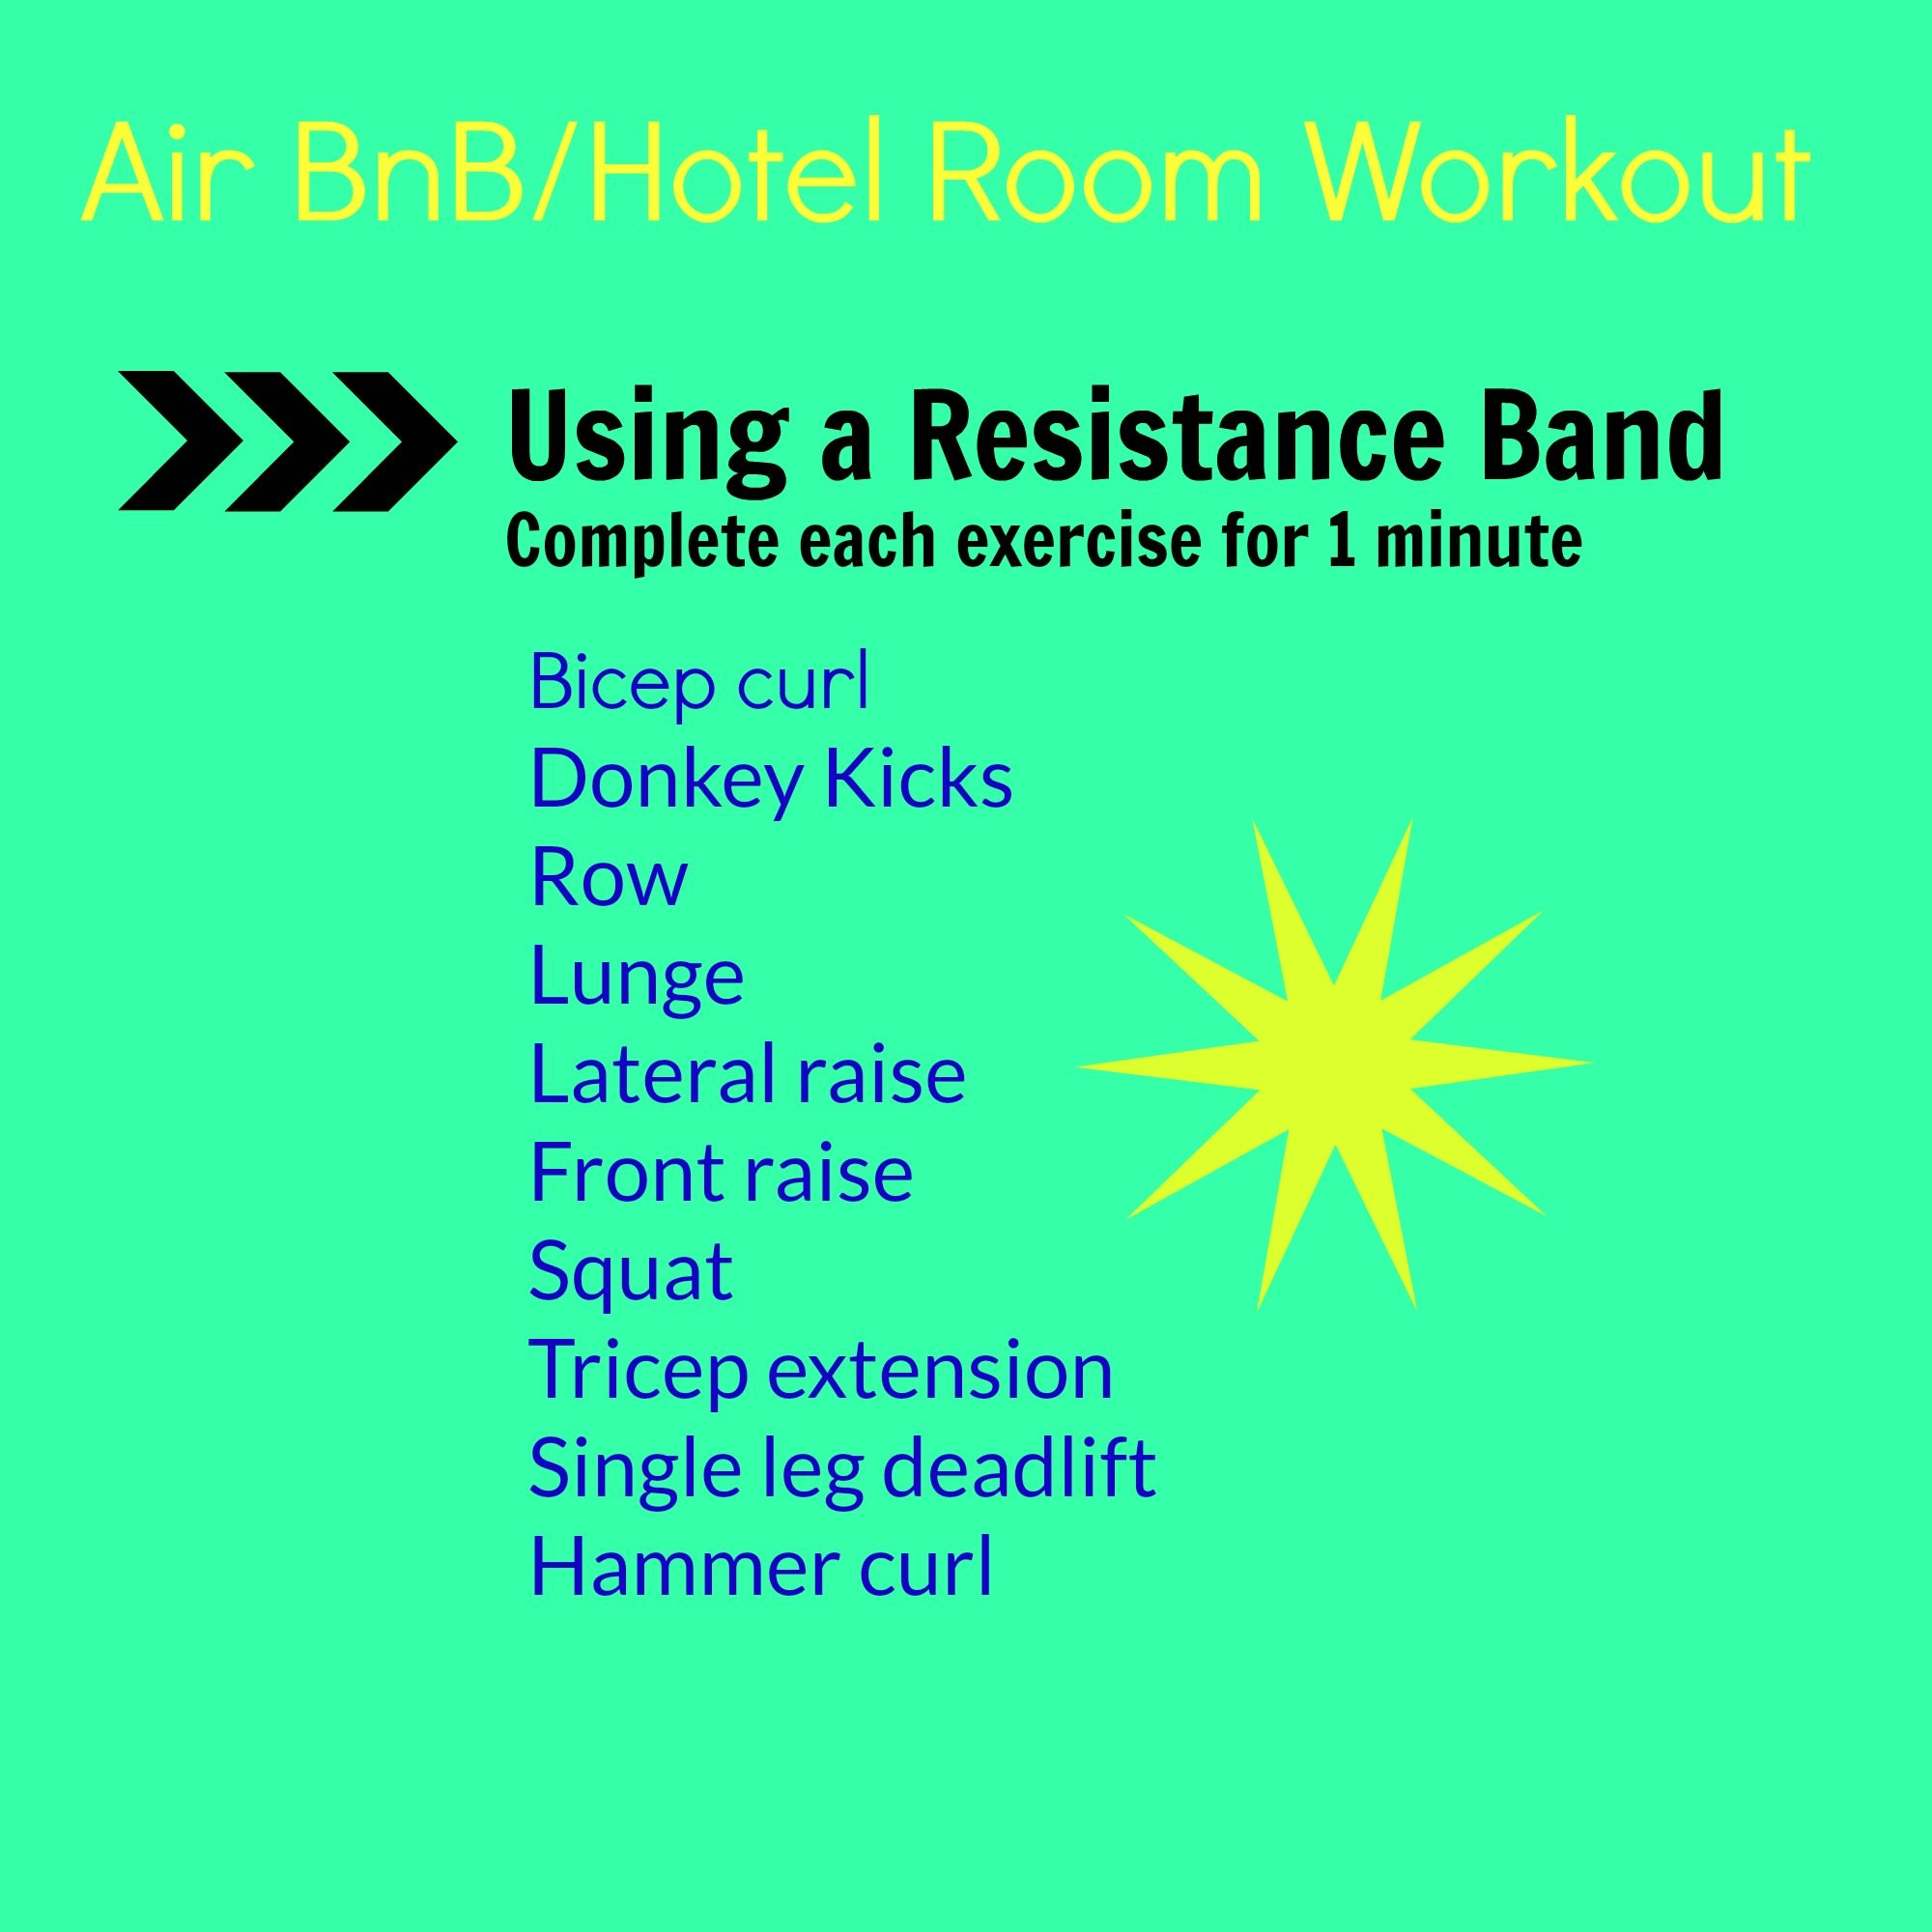 AirBnB Hotel workout